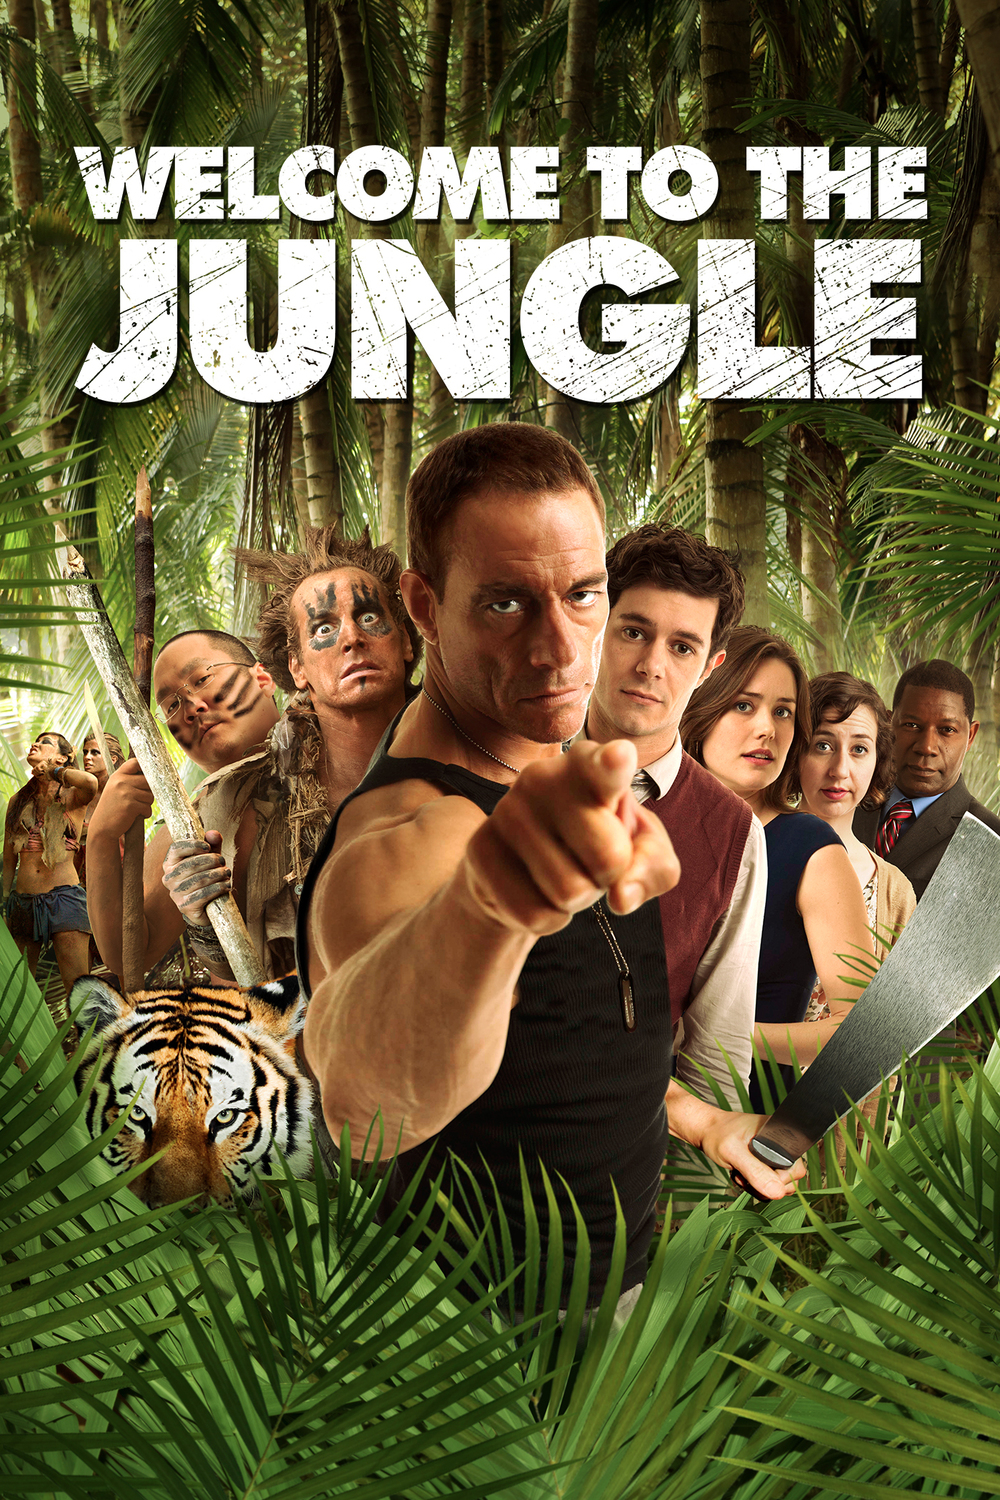 red-band-trailer-for-van-dammes-welcome-to-the-jungle.jpg